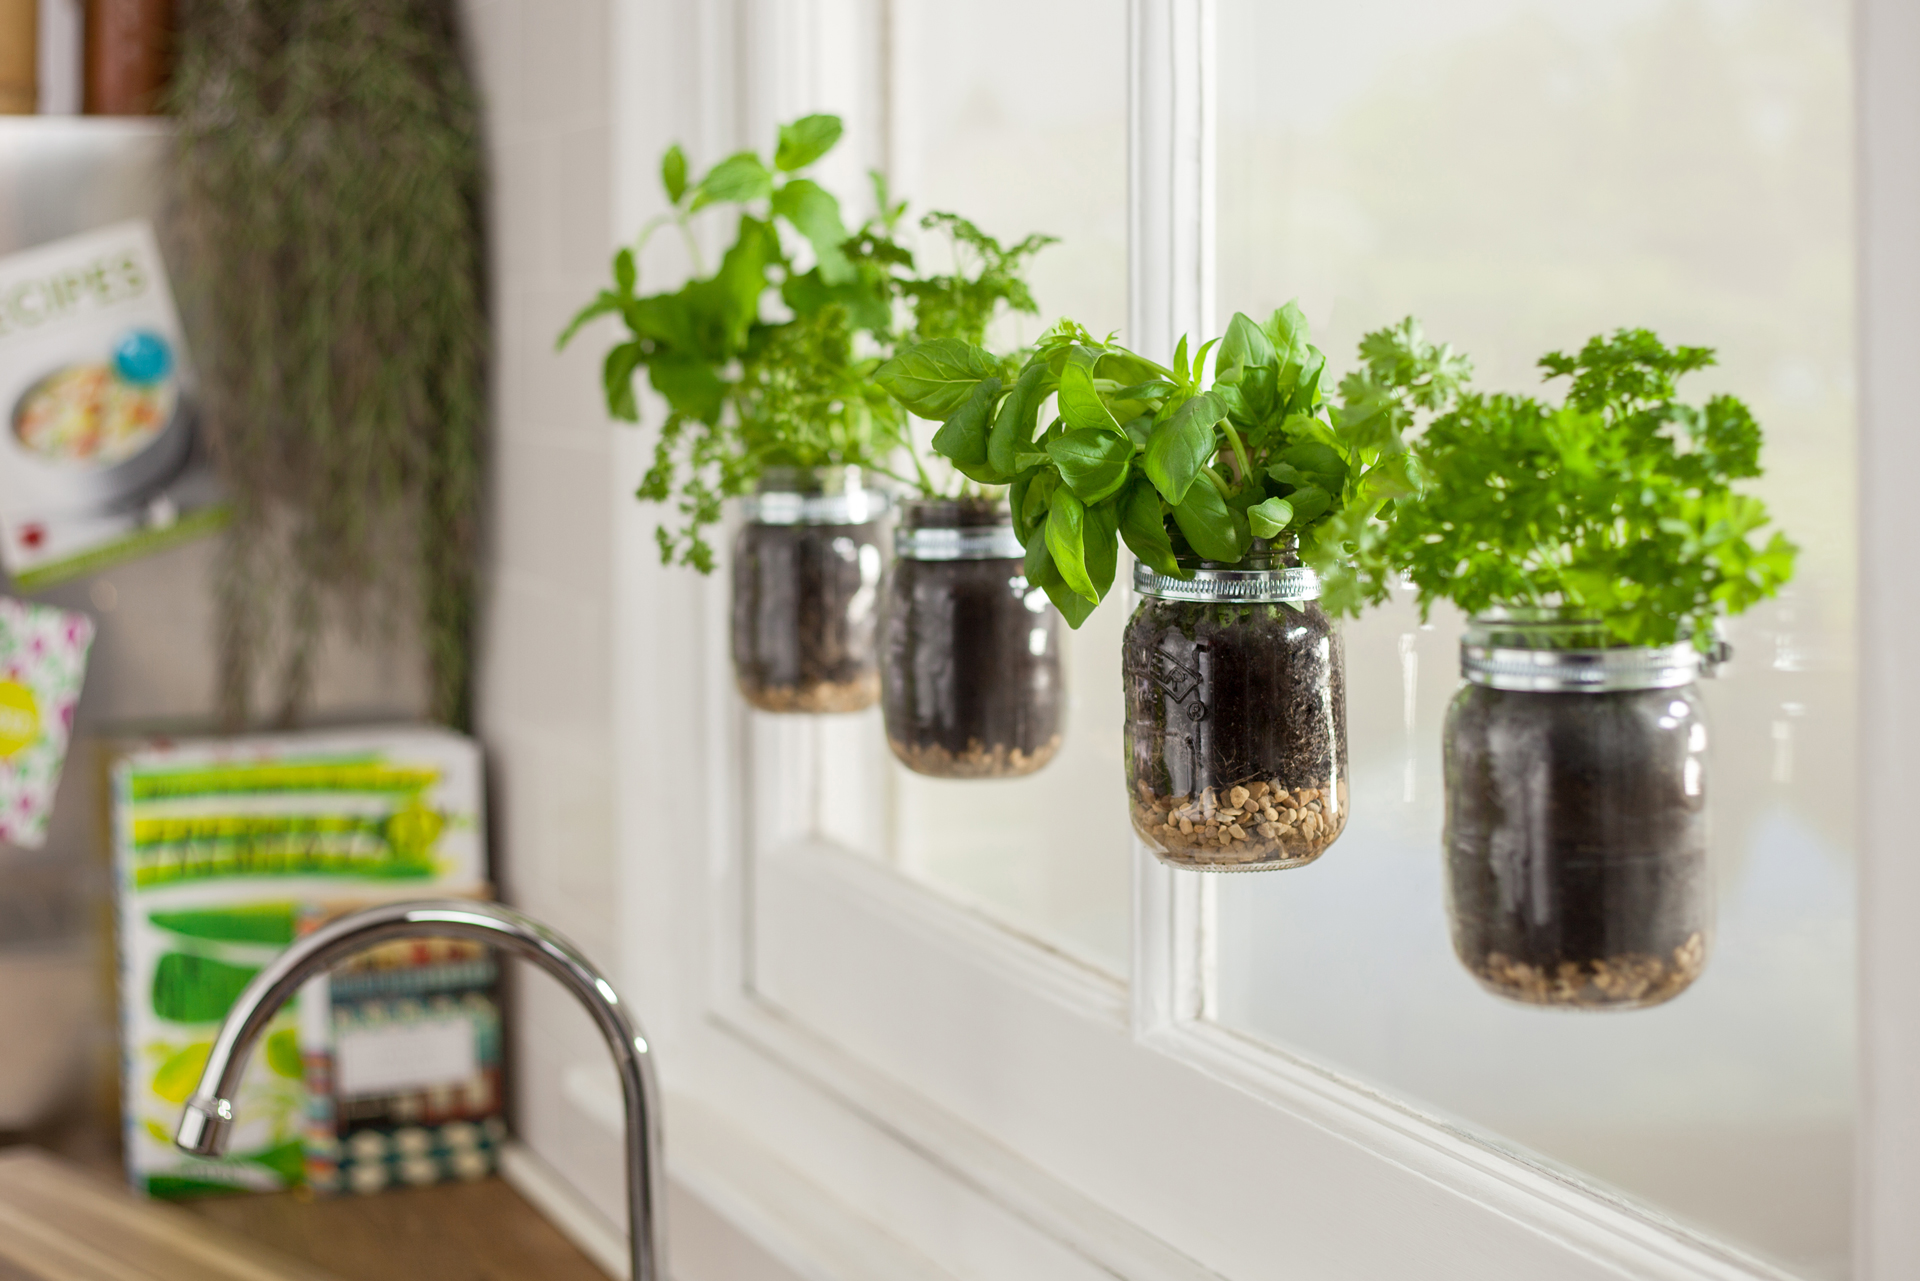 Jars with plants in them are hanging from the kitchen window.